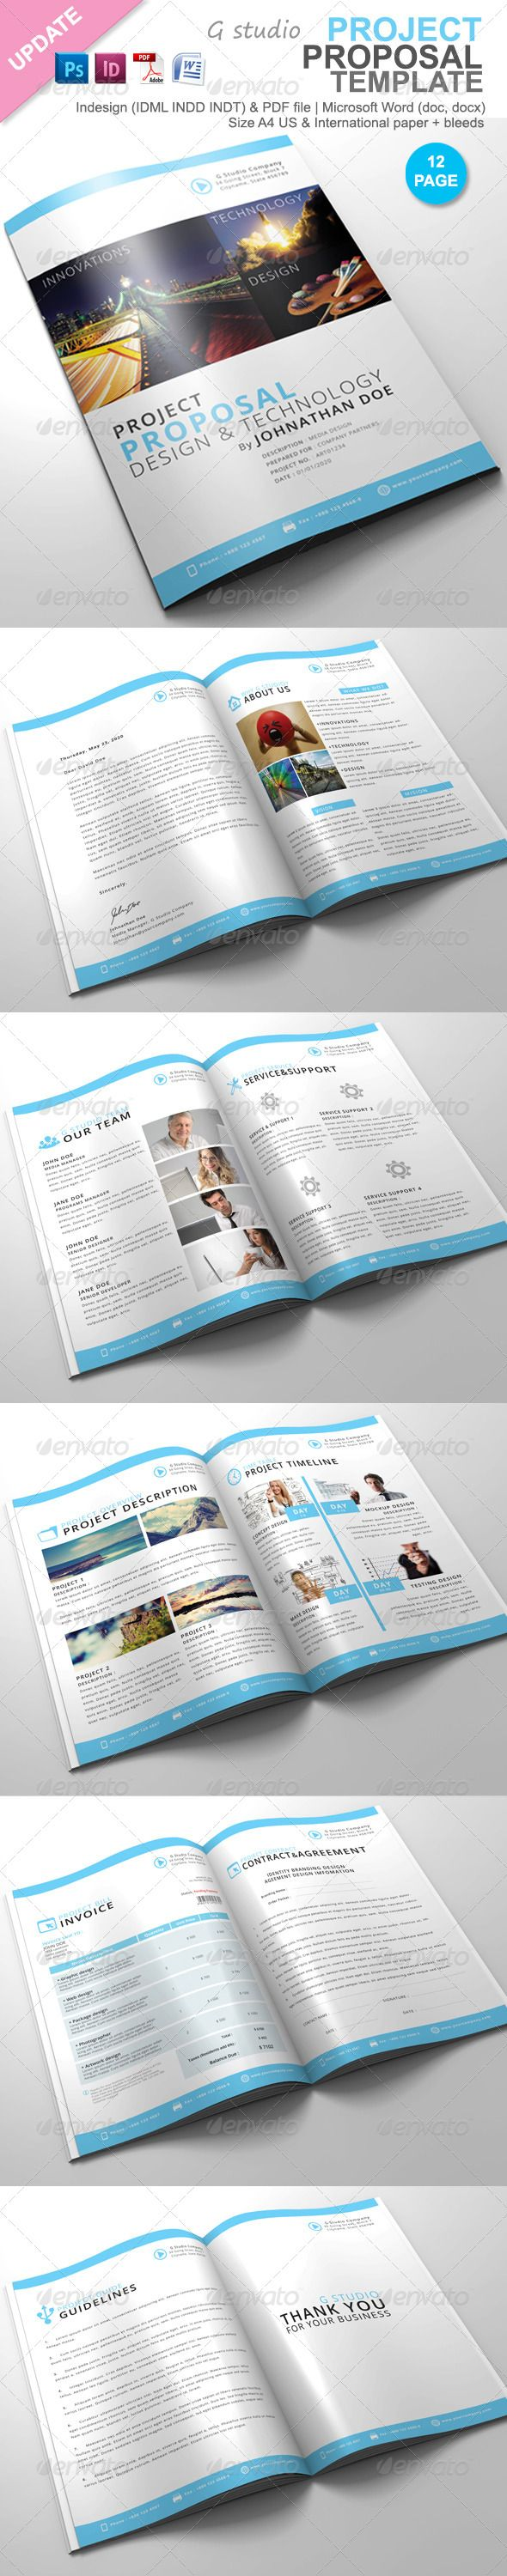 Gstudio Project Proposal Template 122 best Business